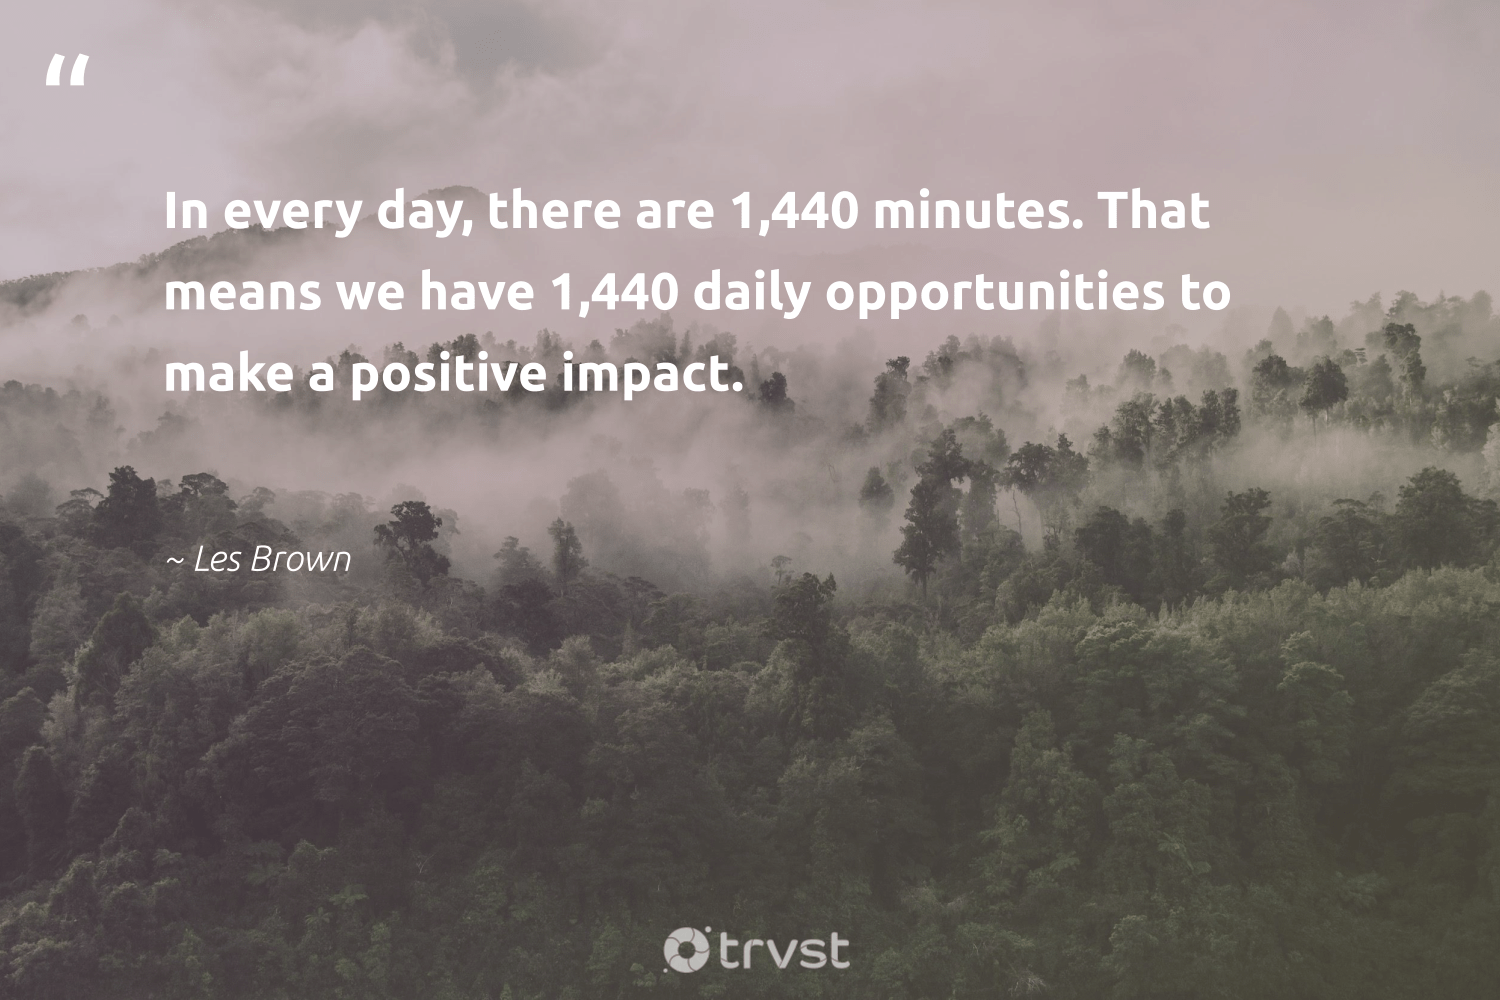 """In every day, there are 1,440 minutes. That means we have 1,440 daily opportunities to make a positive impact.""  - Les Brown #trvst #quotes #impact #socialchange #changetheworld #makeadifference #gogreen #ethicalbusiness #dogood #weareallone #ecoconscious #giveback"